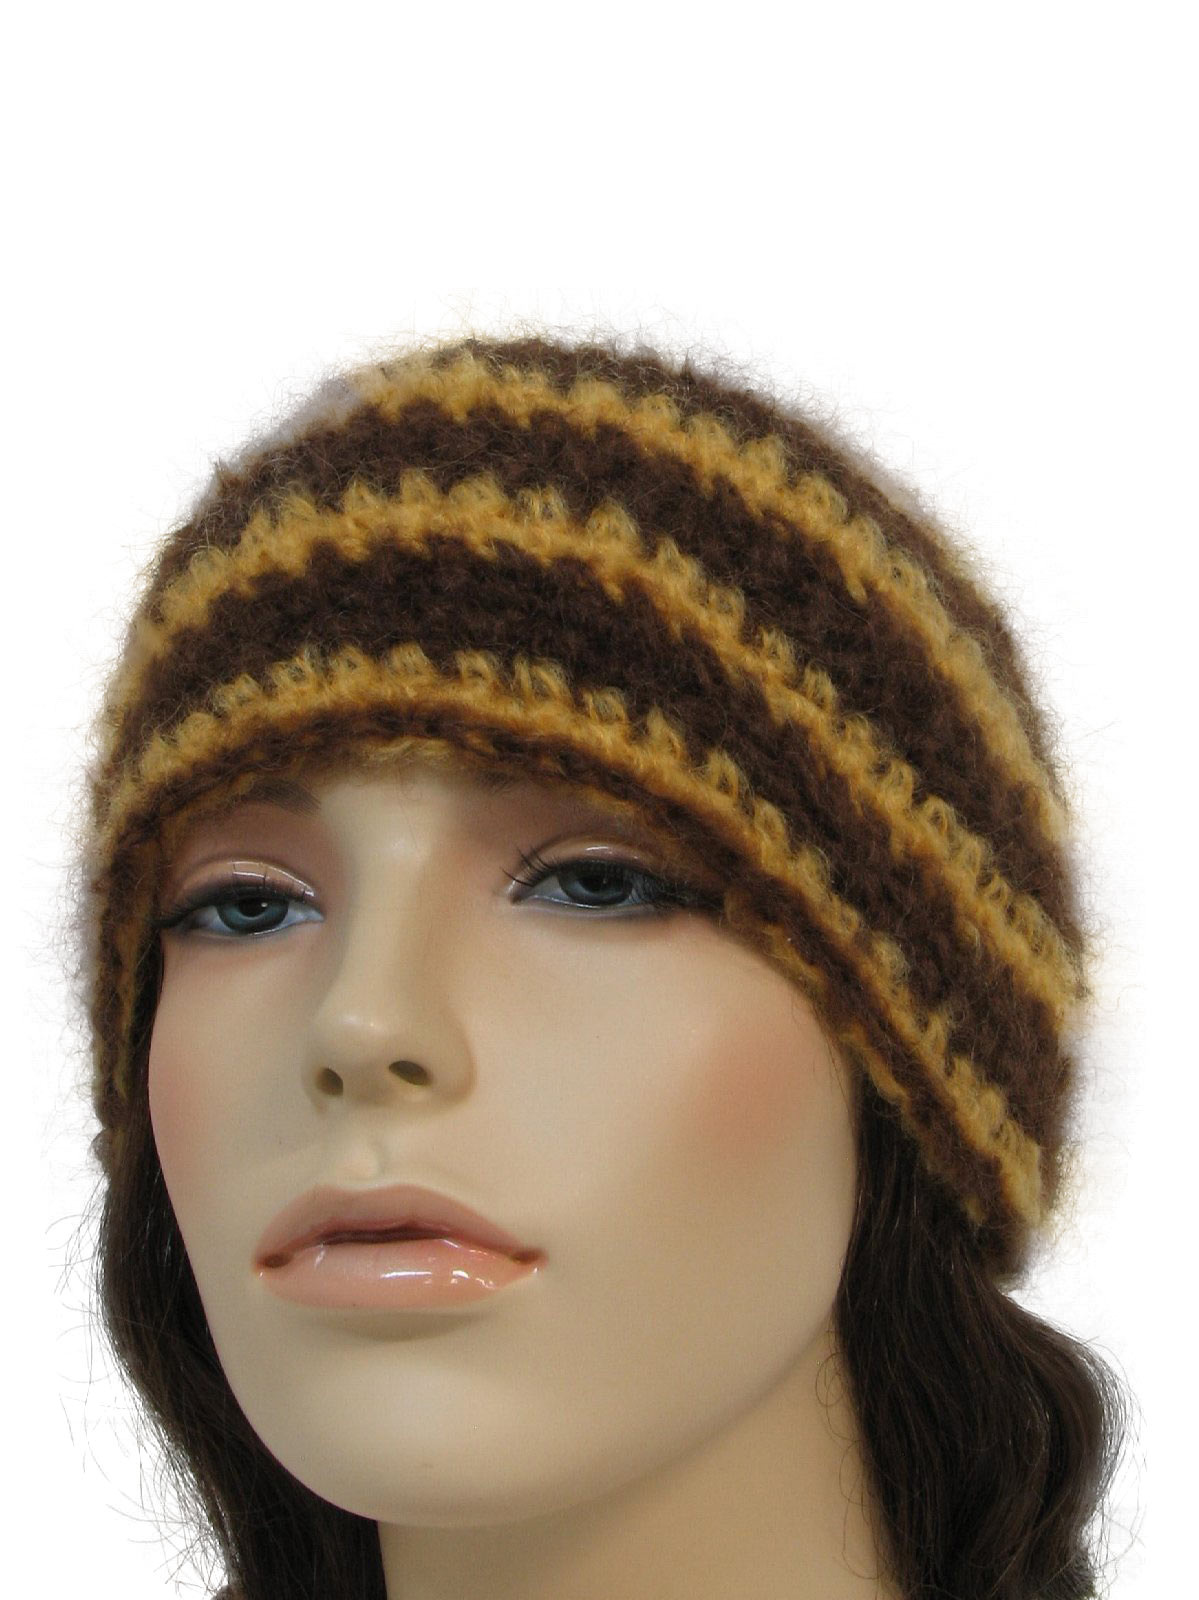 Vintage Hand Crocheted Seventies Hat  70s style (made recently ... 3a1d9163d